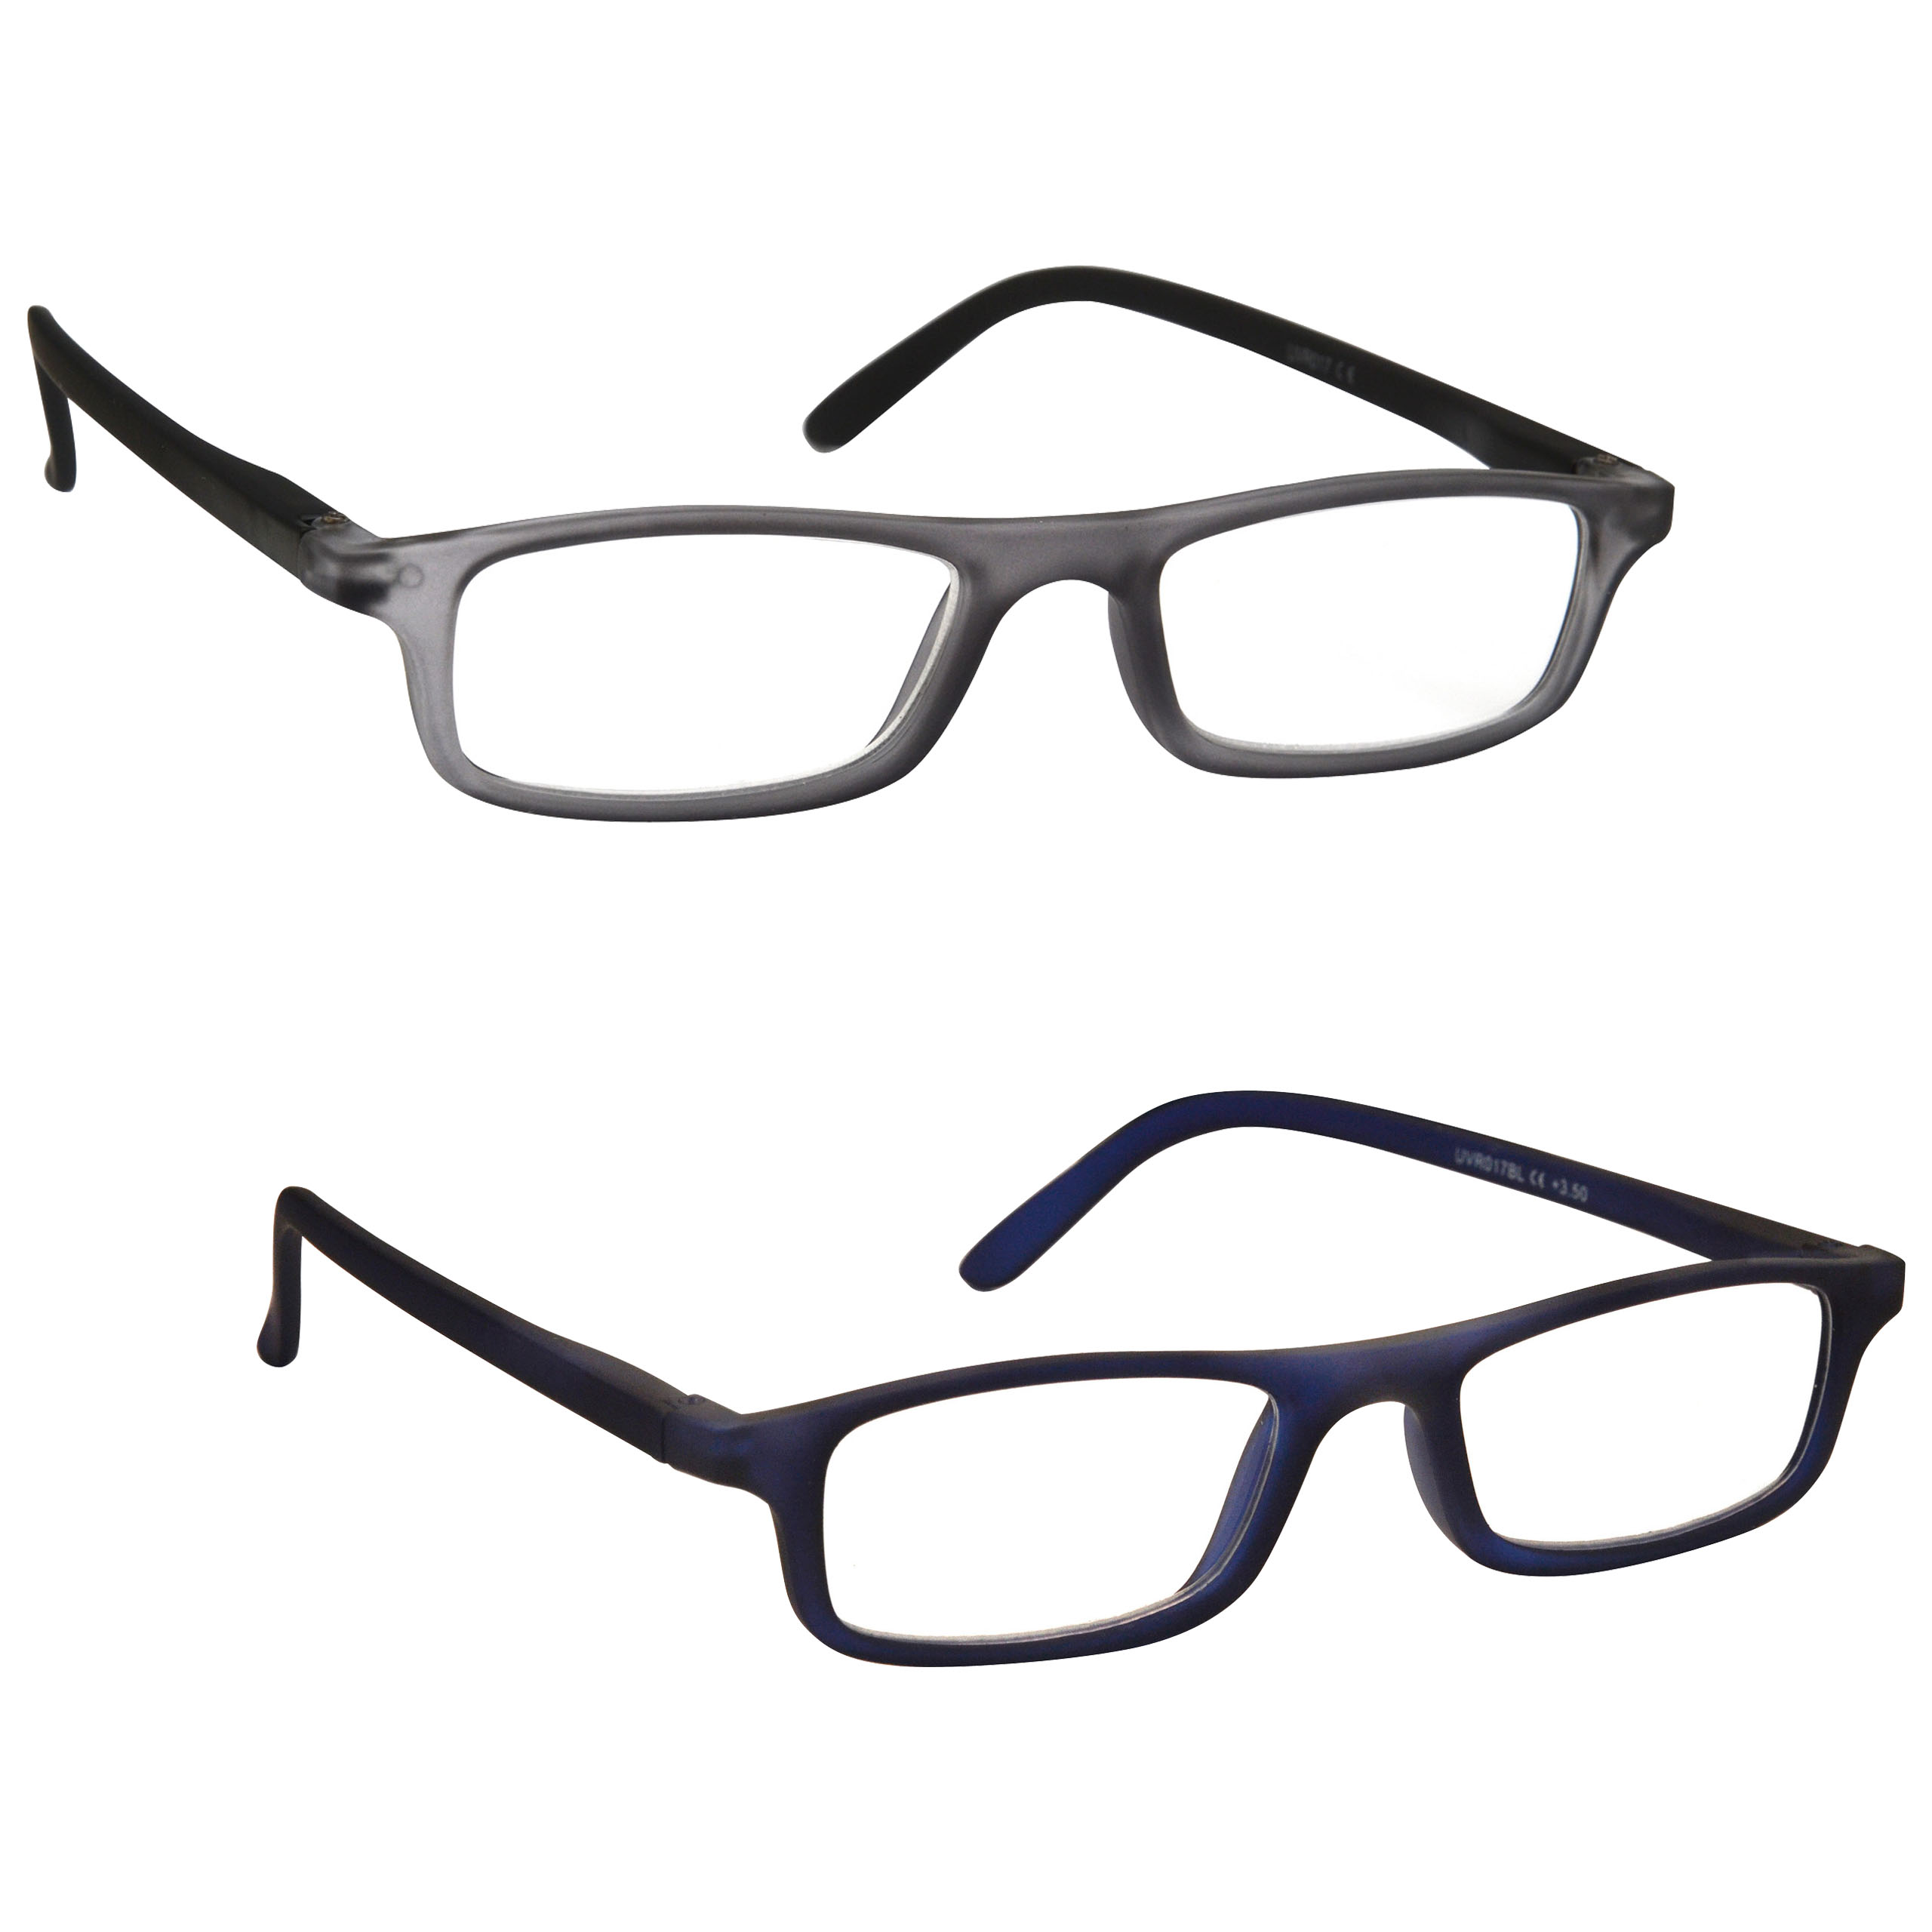 uv reader lightweight reading glasses designer style mens